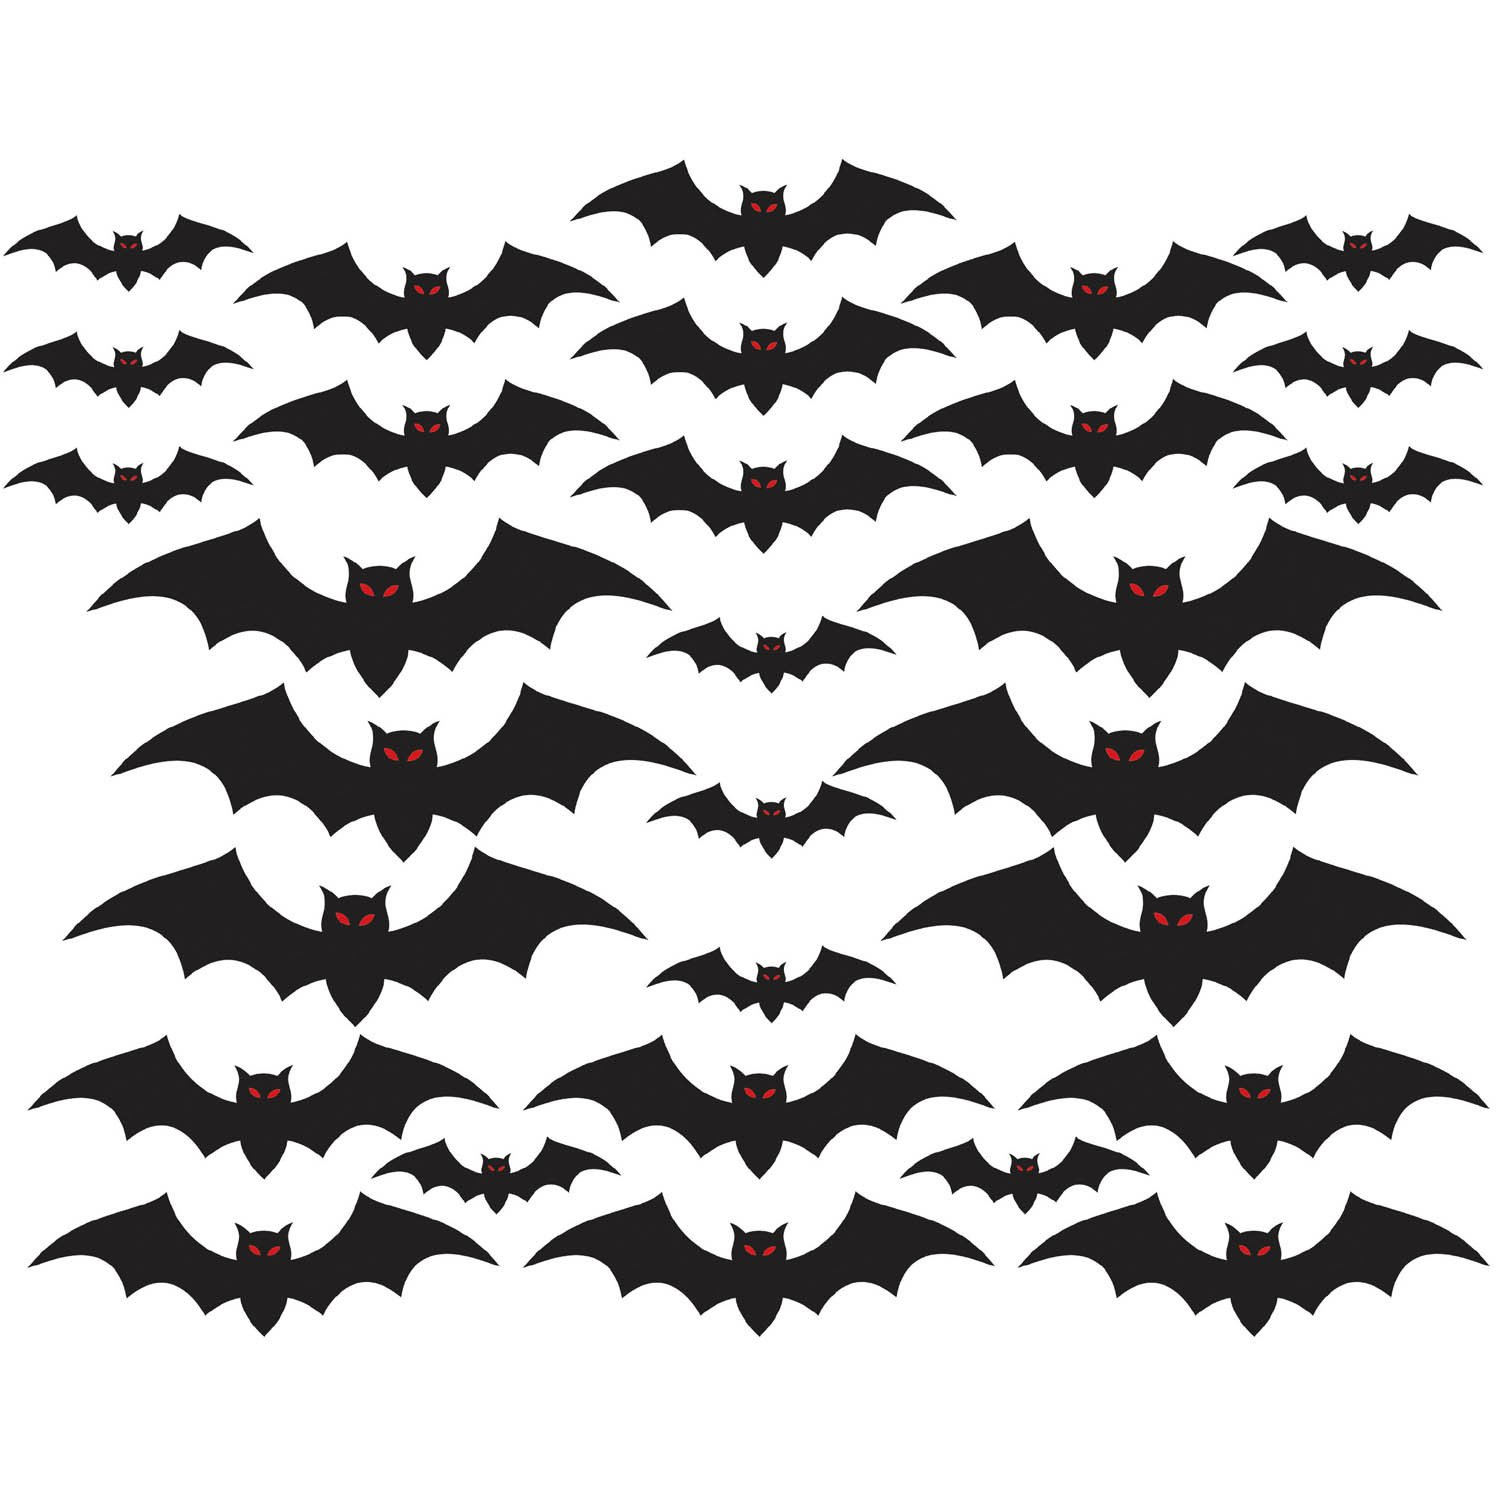 amazoncom halloween cemetery bat cutouts mega value pack 30 pack toys games - Bat Halloween Decorations